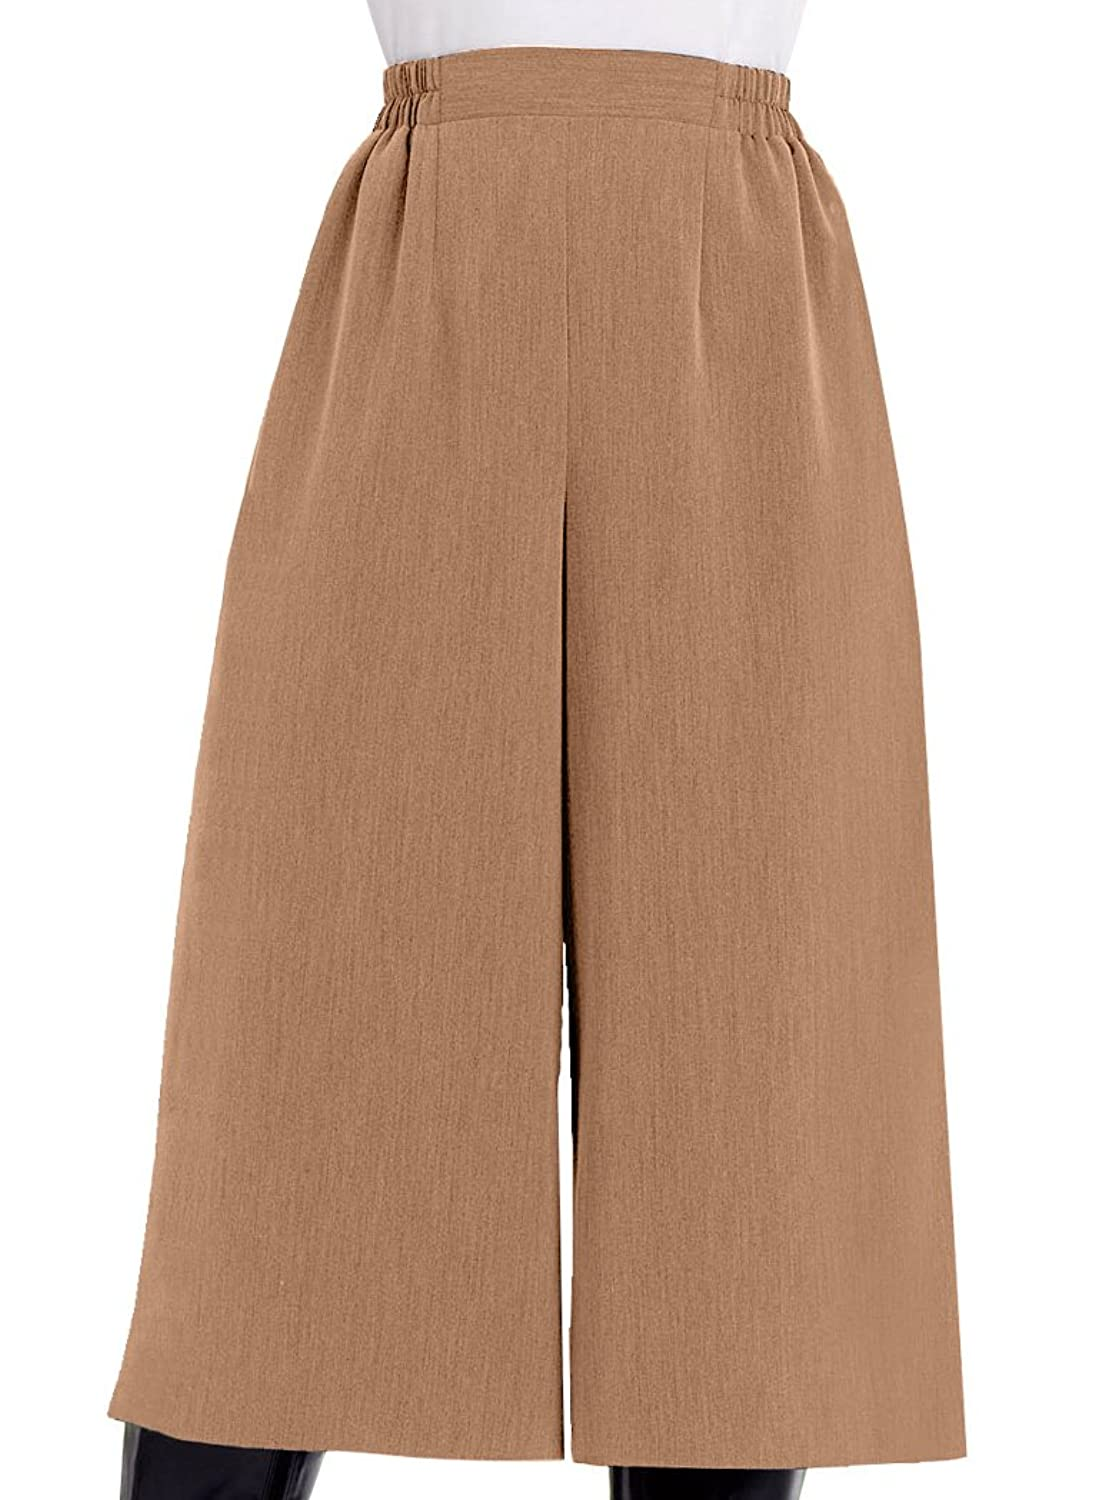 1920s Skirts, Gatsby Skirts, Vintage Pleated Skirts Flat Front Culottes  AT vintagedancer.com